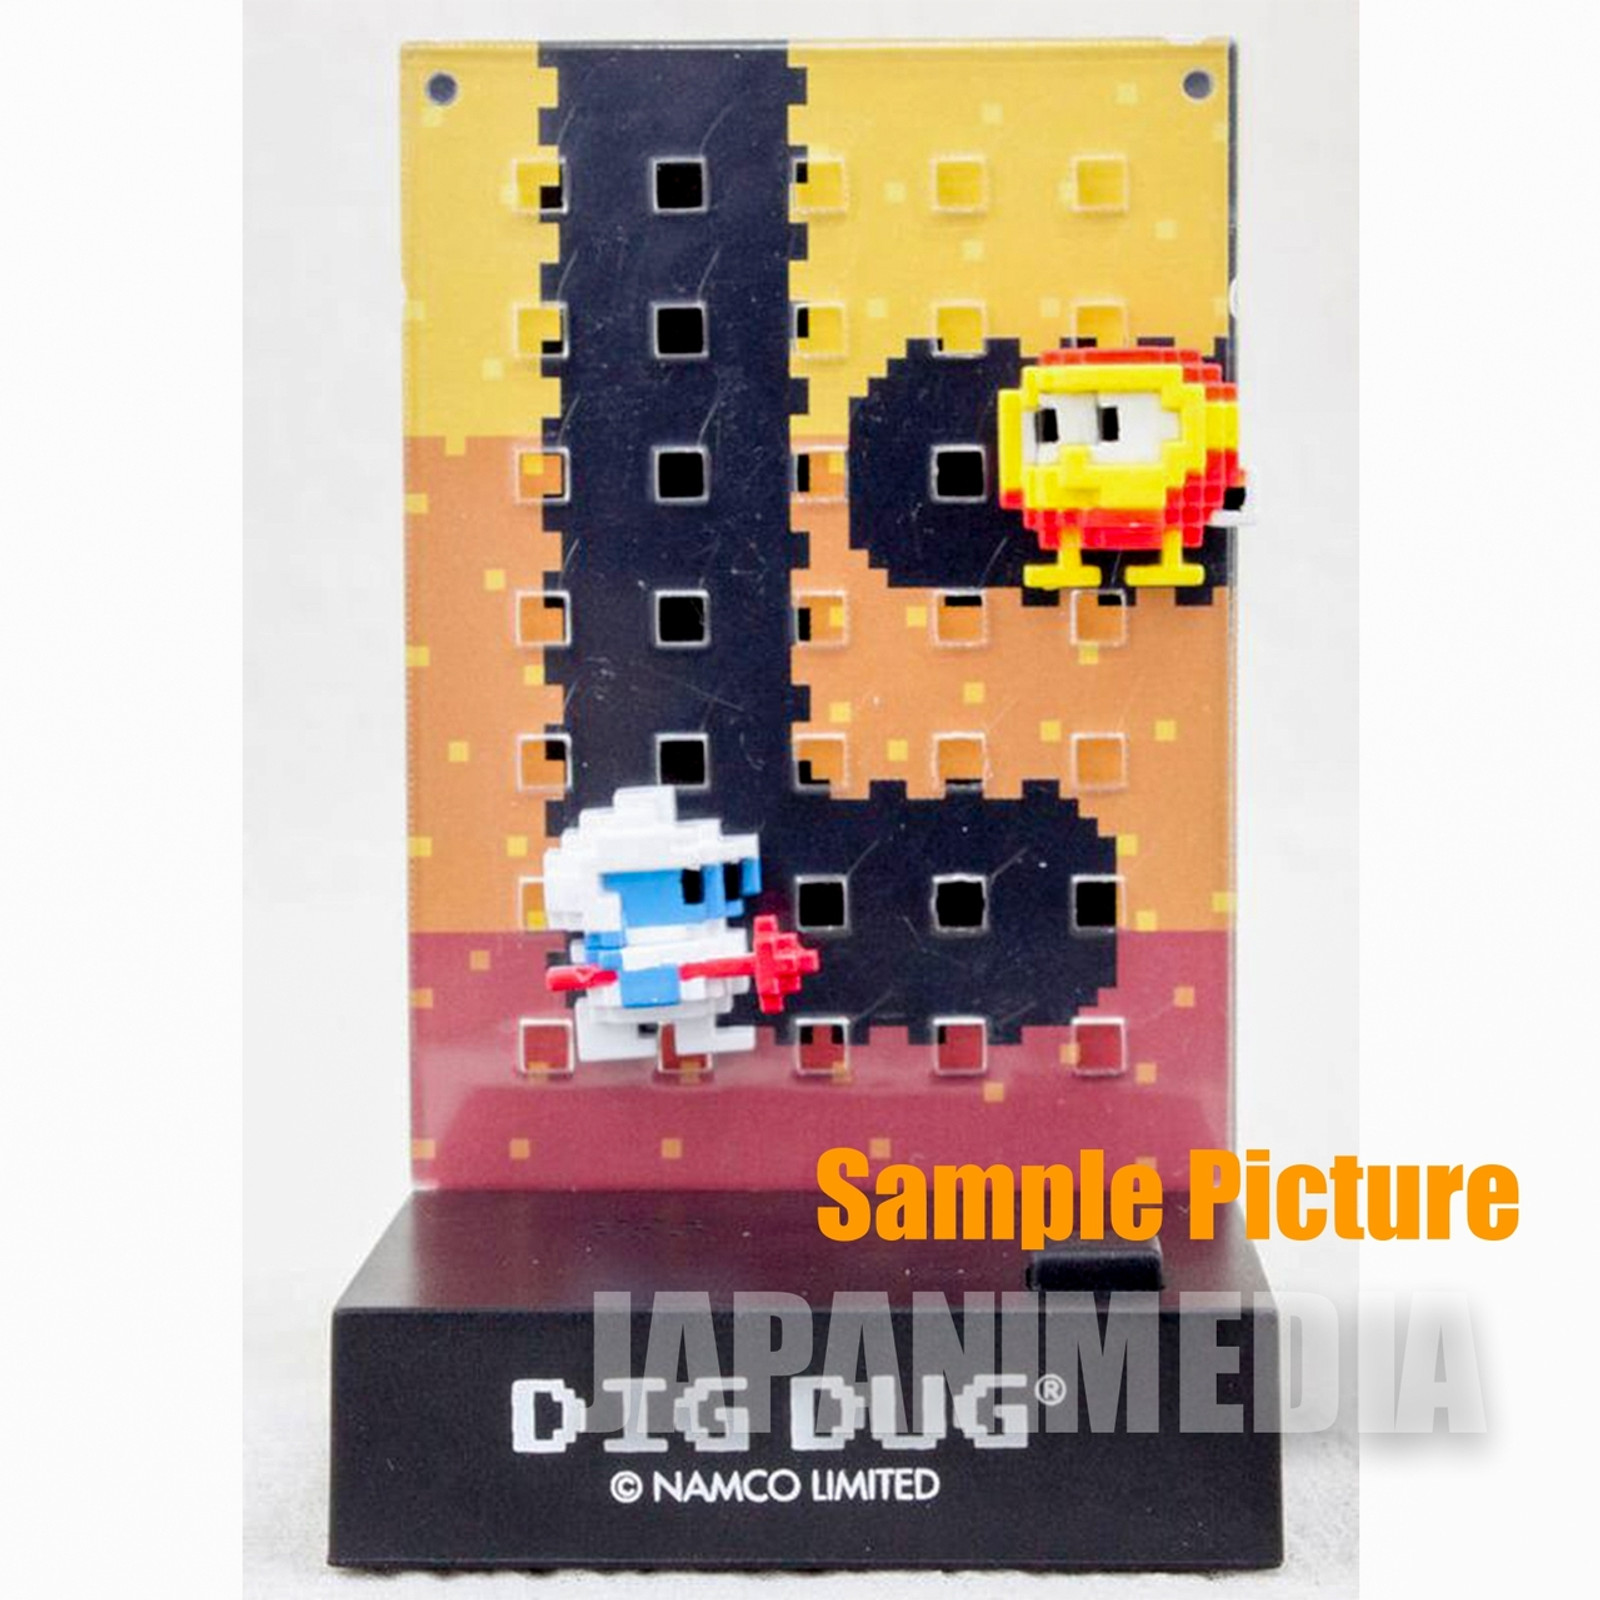 RARE! Namco Dotgraphics Dig Dug  Figure with Game Sound JAPAN FAMICOM